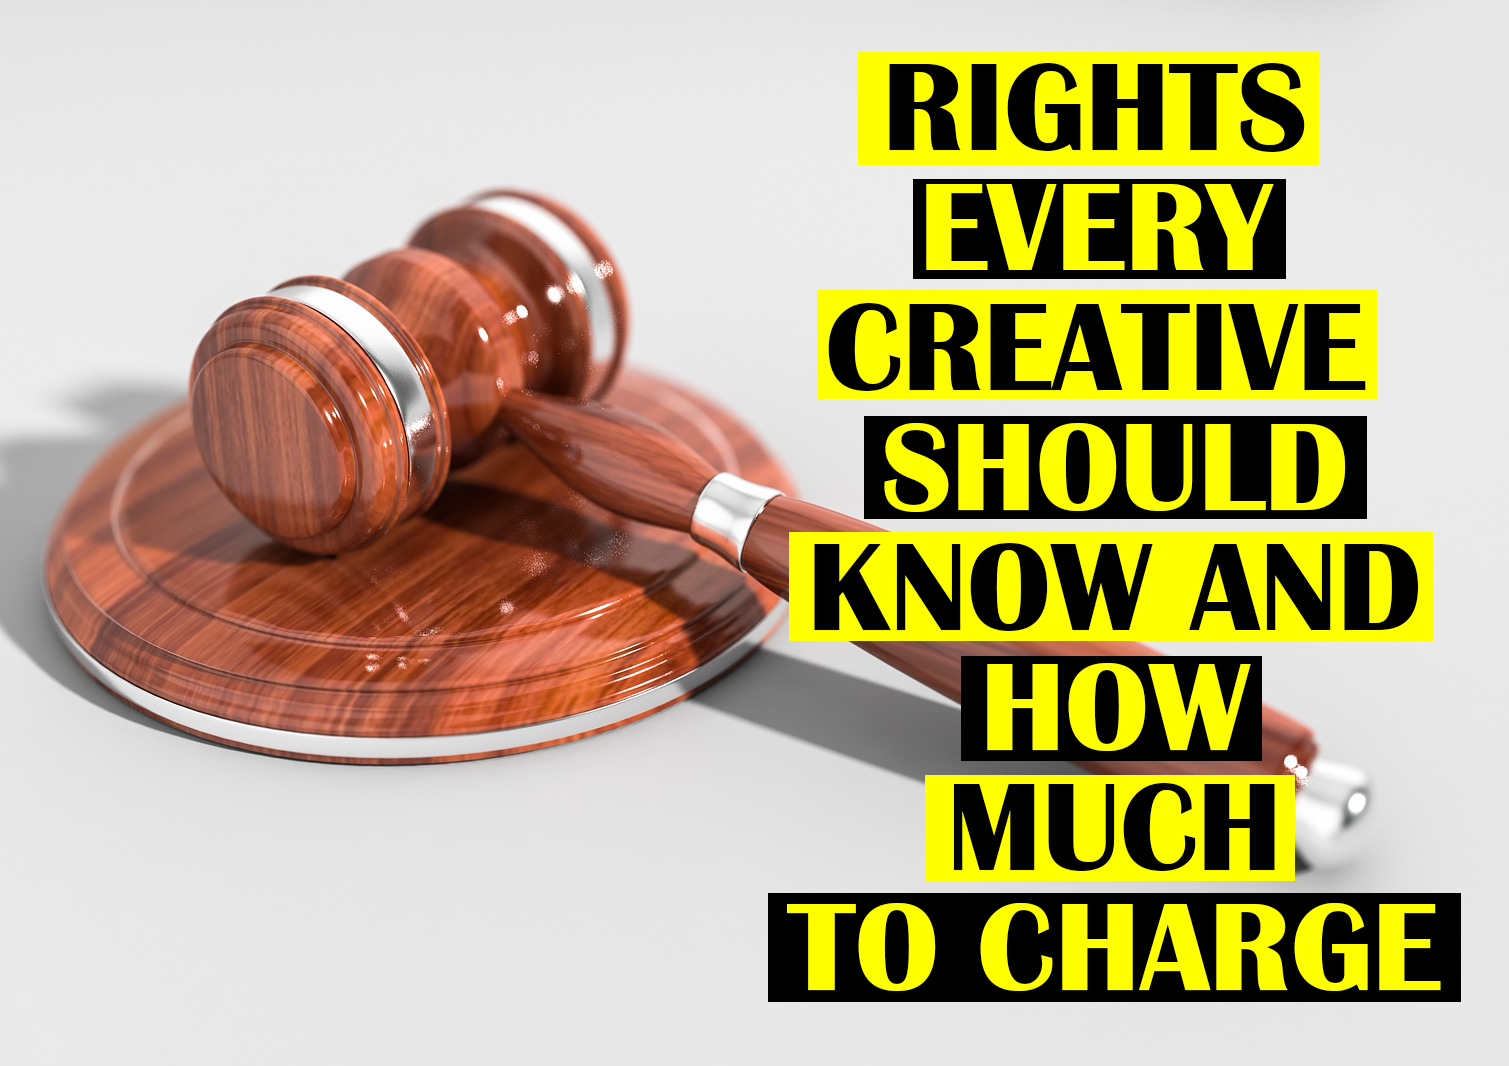 Creative Rights Every Freelancer Should Know and How Much to Charge